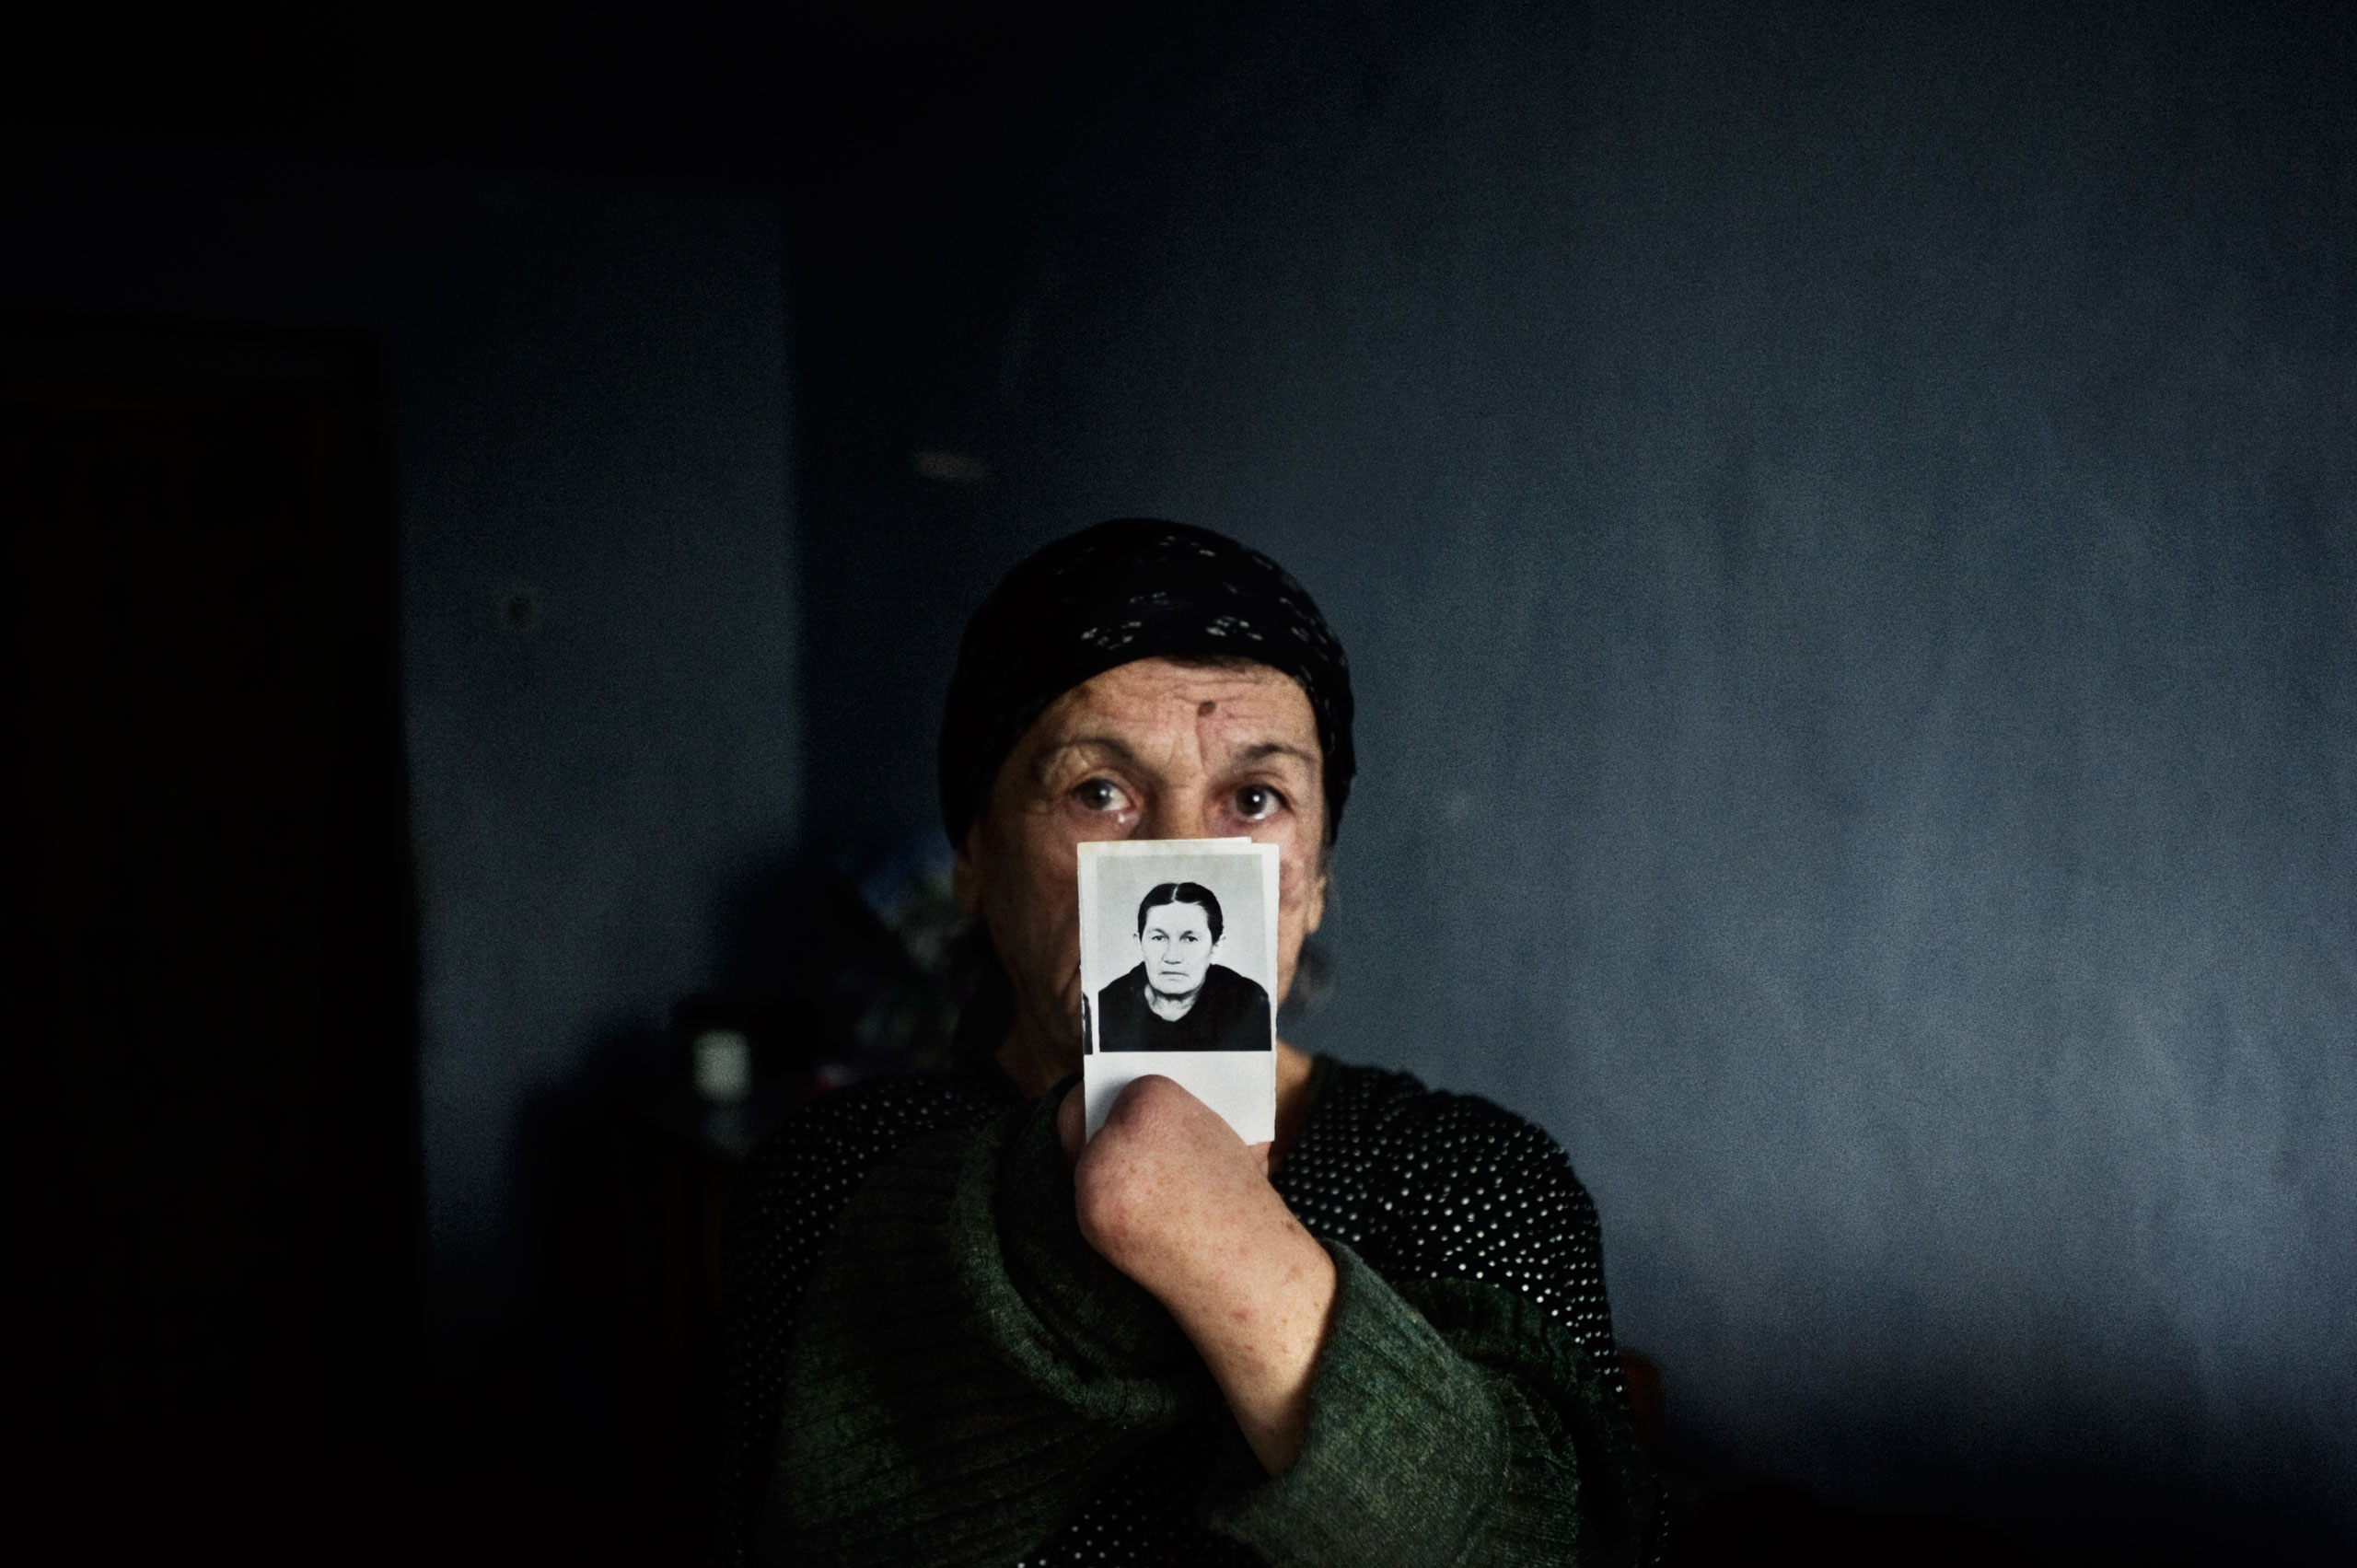 Zainap Gaisanova, an invalid and resident in a building occupied by internally displaced persons in Grozny, Chechnya, October 2009.